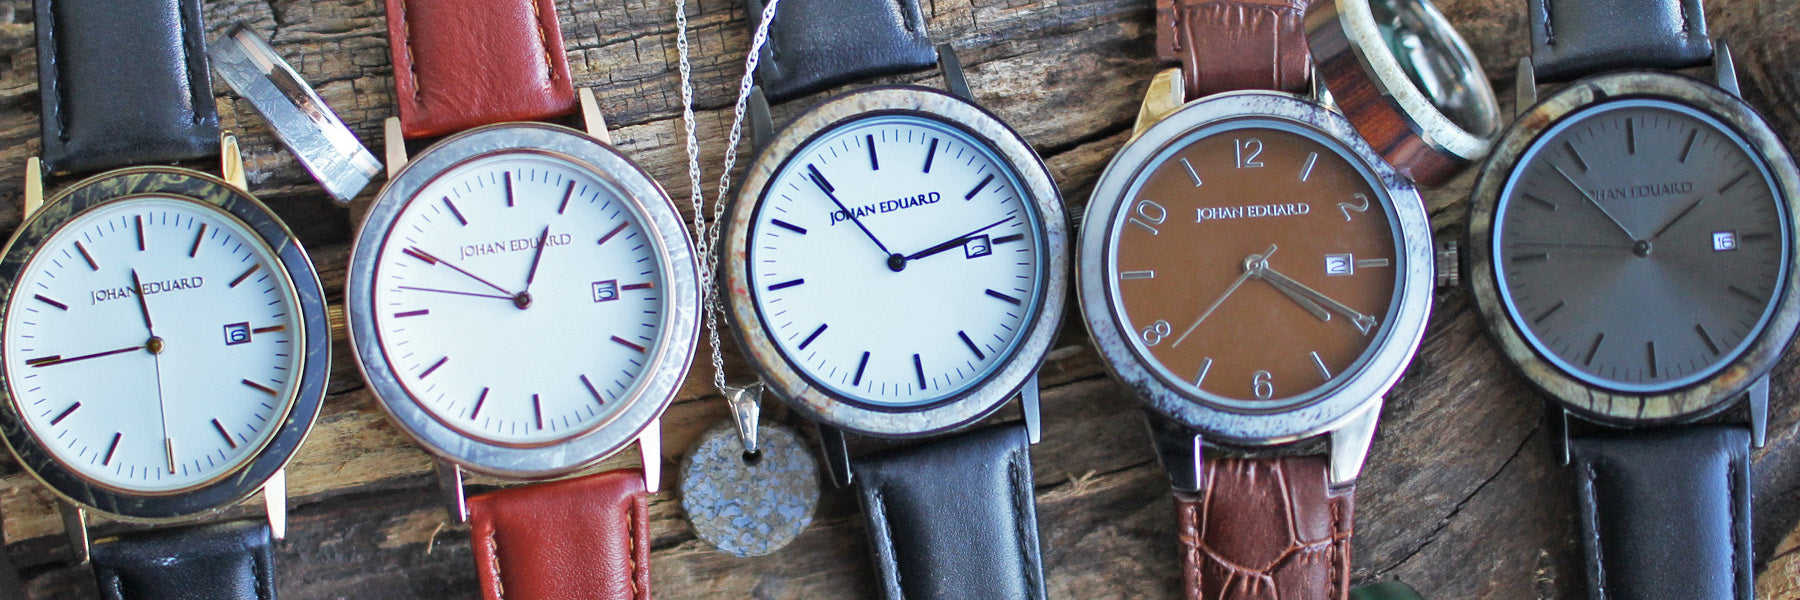 How To Build Your Johan Eduard Watch